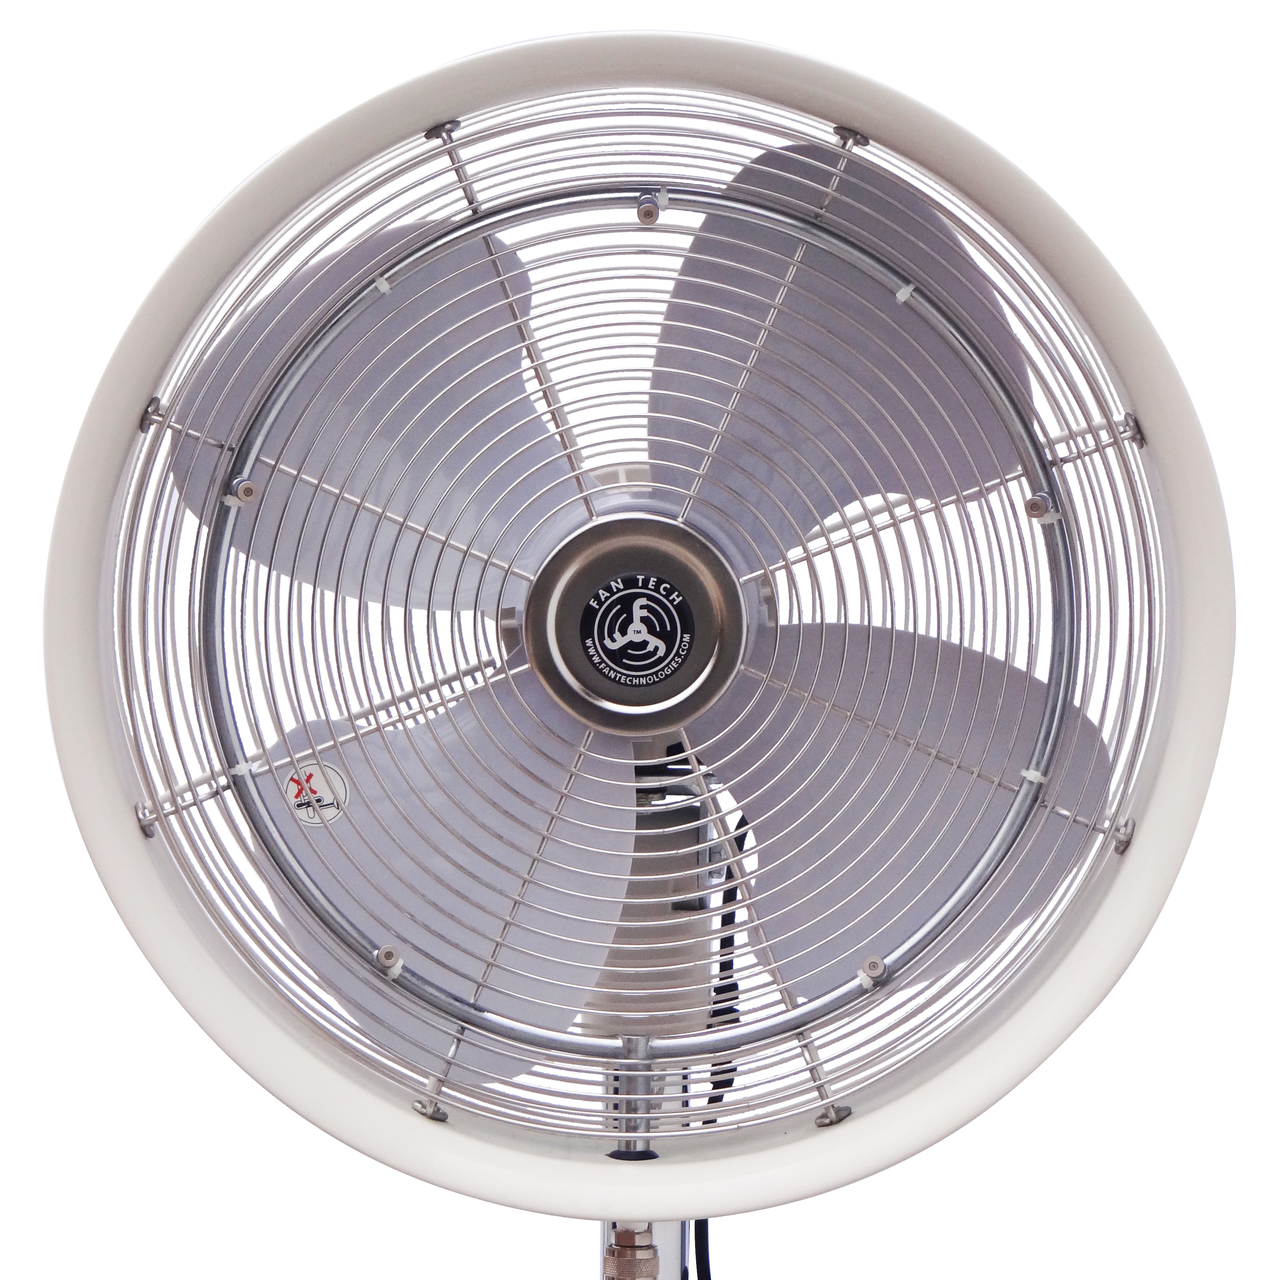 front view of fan